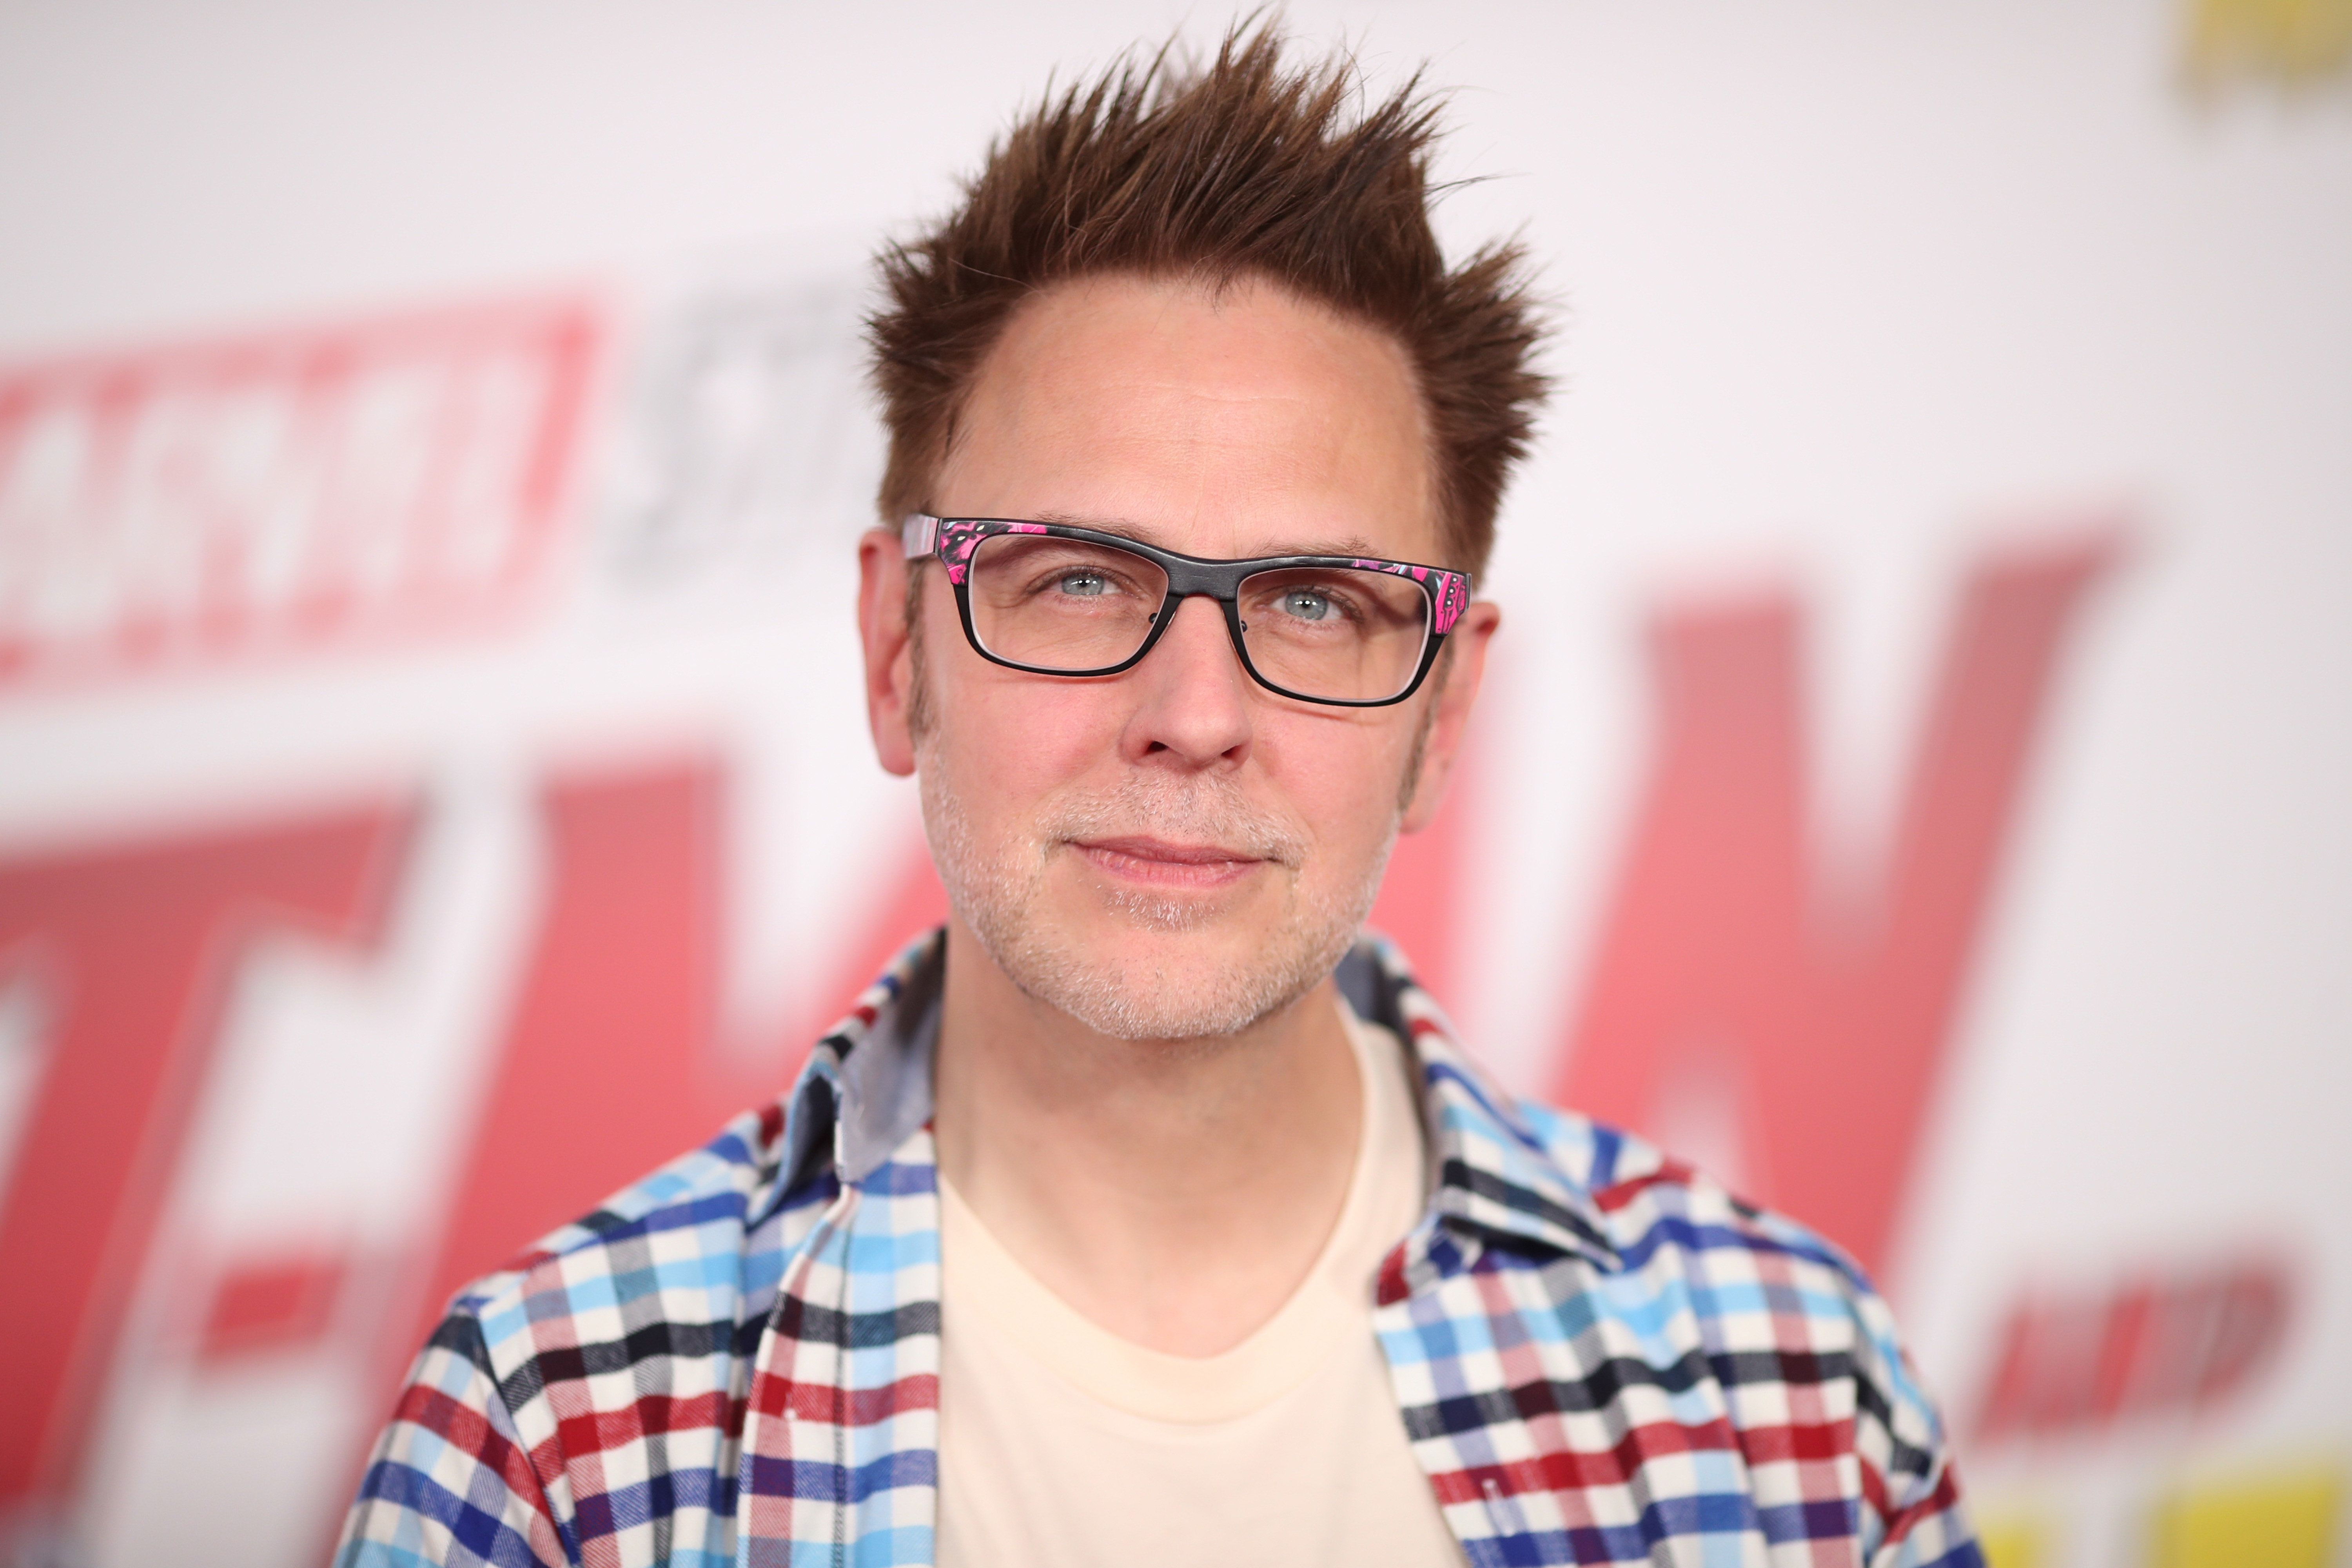 LOS ANGELES, CA - JUNE 25:  James Gunn attends the premiere of Disney And Marvel's 'Ant-Man And The Wasp' on June 25, 2018 in Los Angeles, California.  (Photo by Christopher Polk/Getty Images)